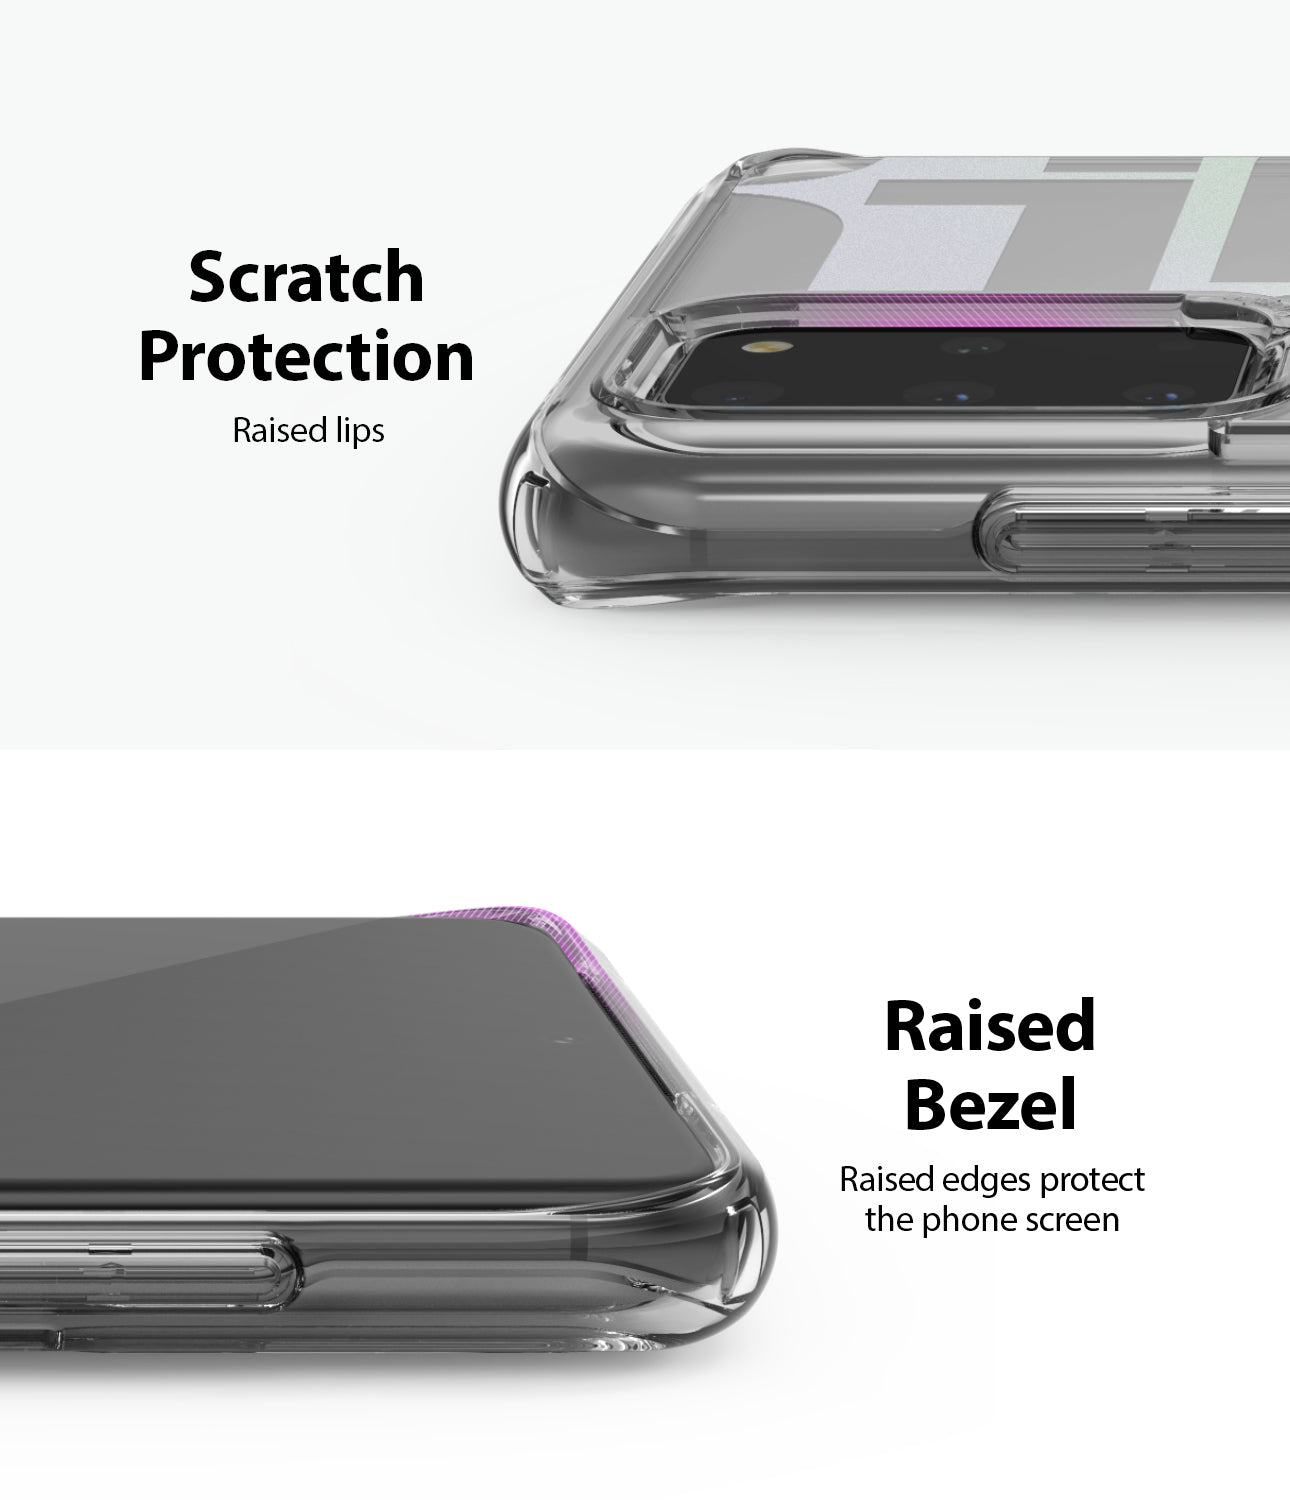 scratch protection with raised lips, raised bezel and edges protect the front screen and rear camera